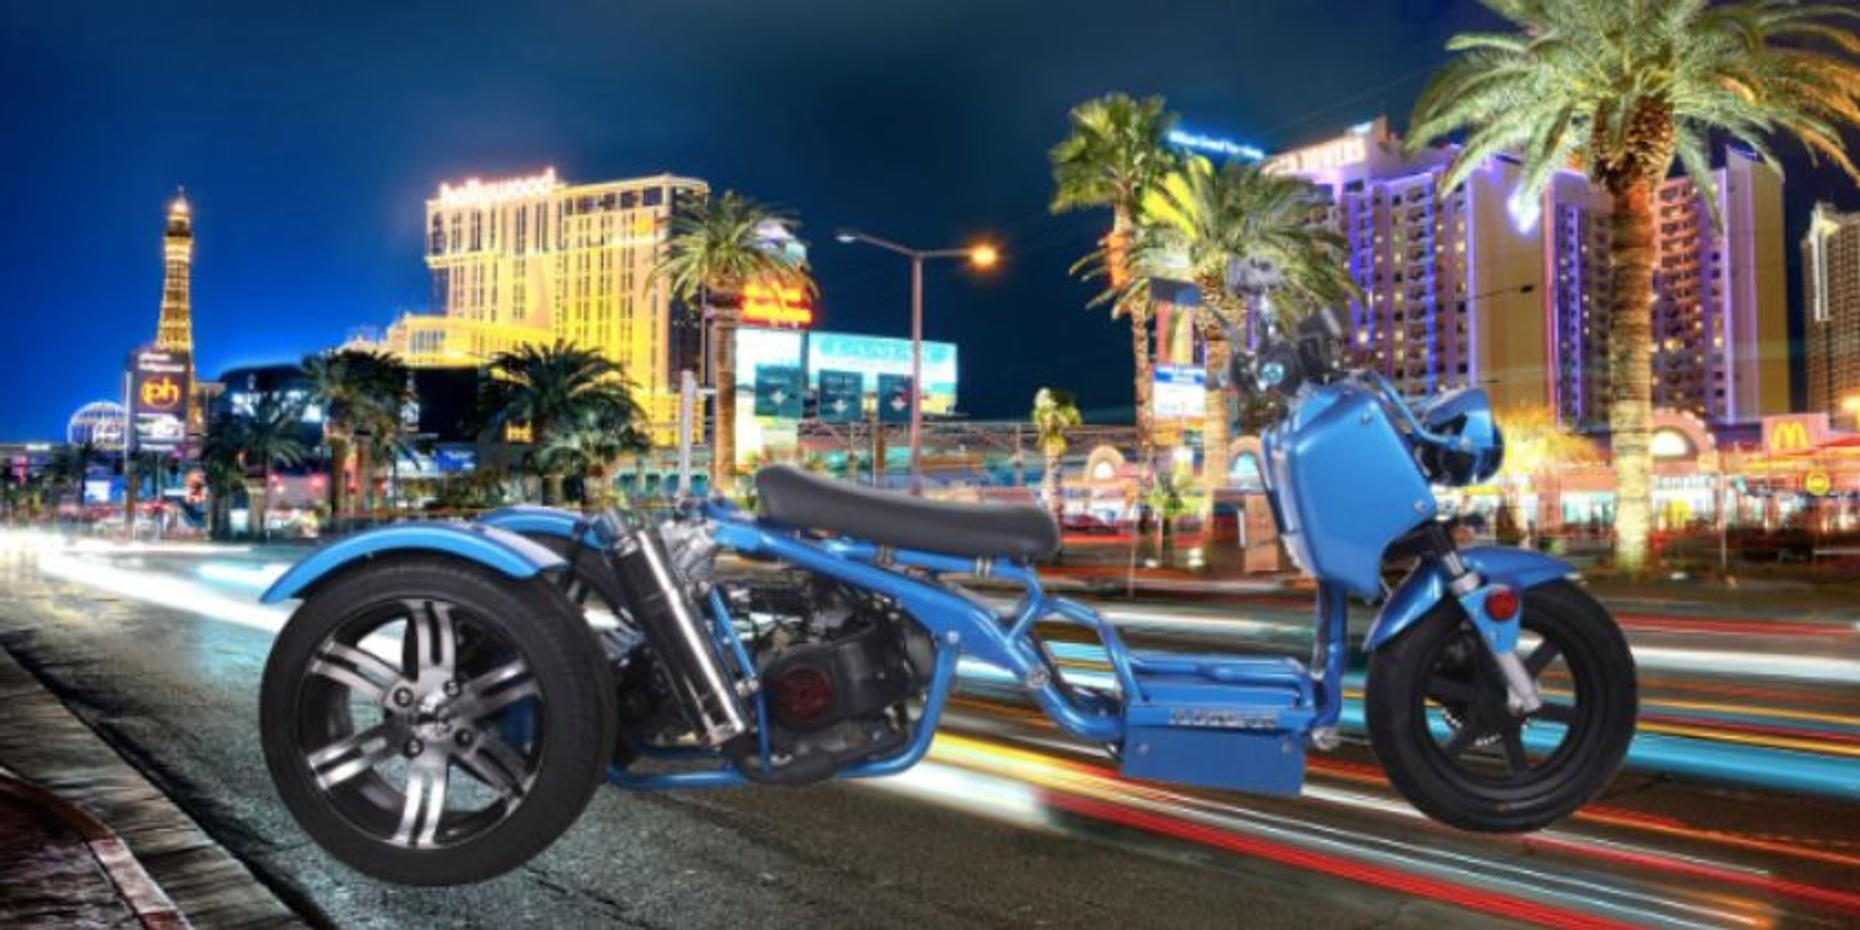 Full-Day Maddog 150cc Trike Rental in Las Vegas